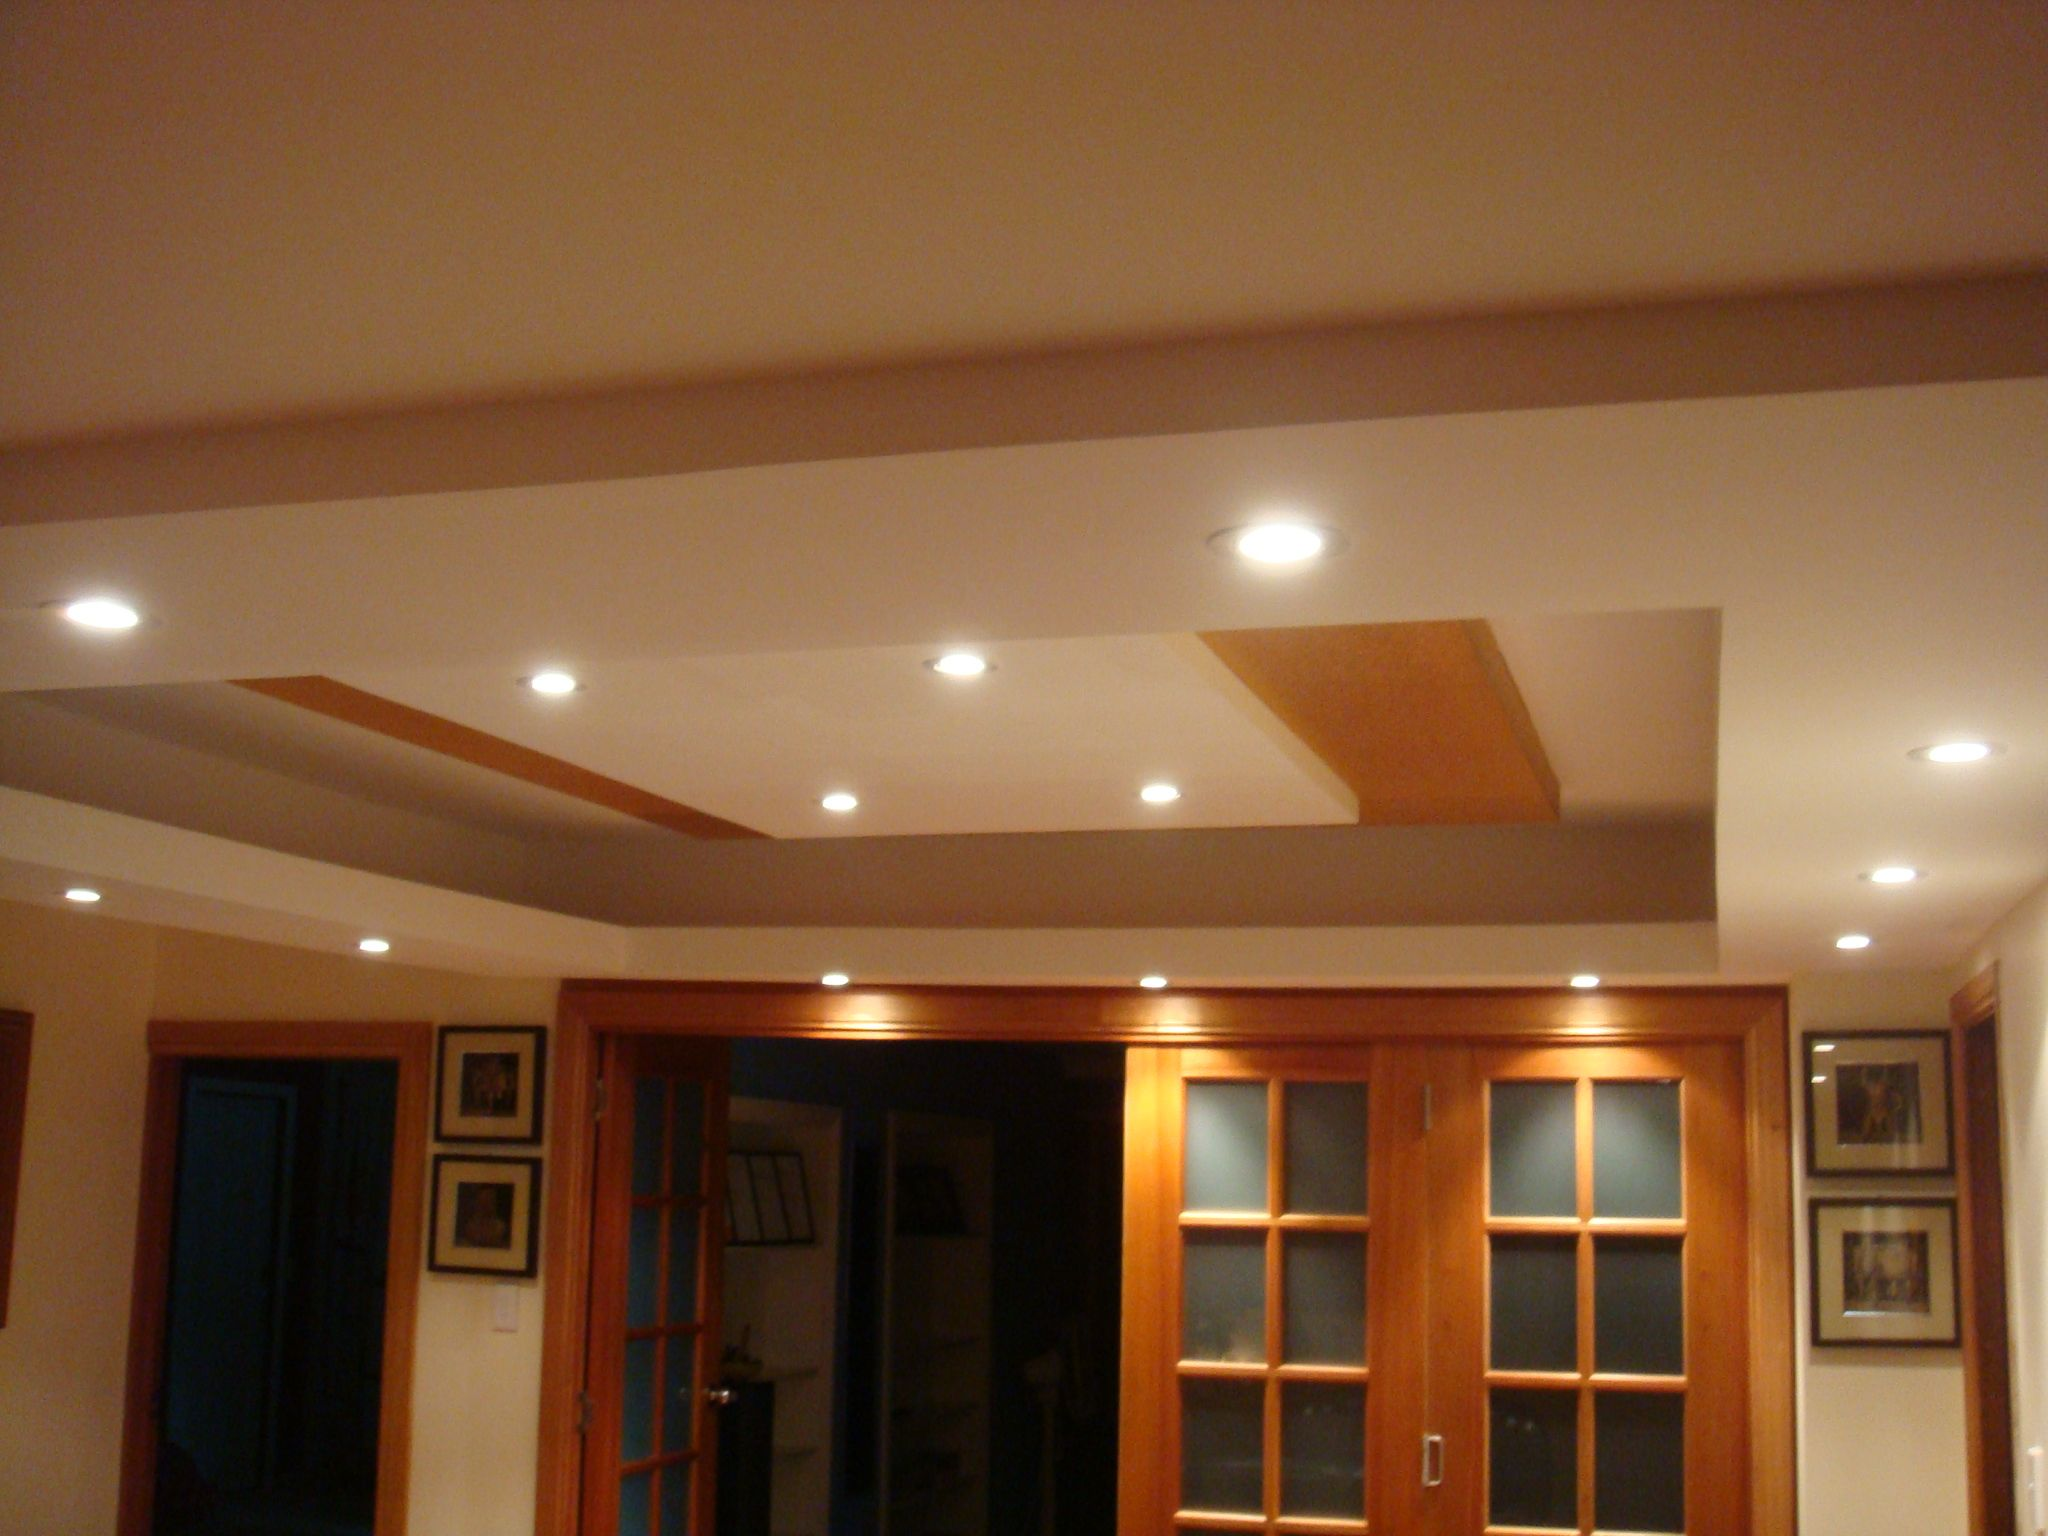 Latest gypsum ceiling designs hall image vectronstudios for Home ceiling design images